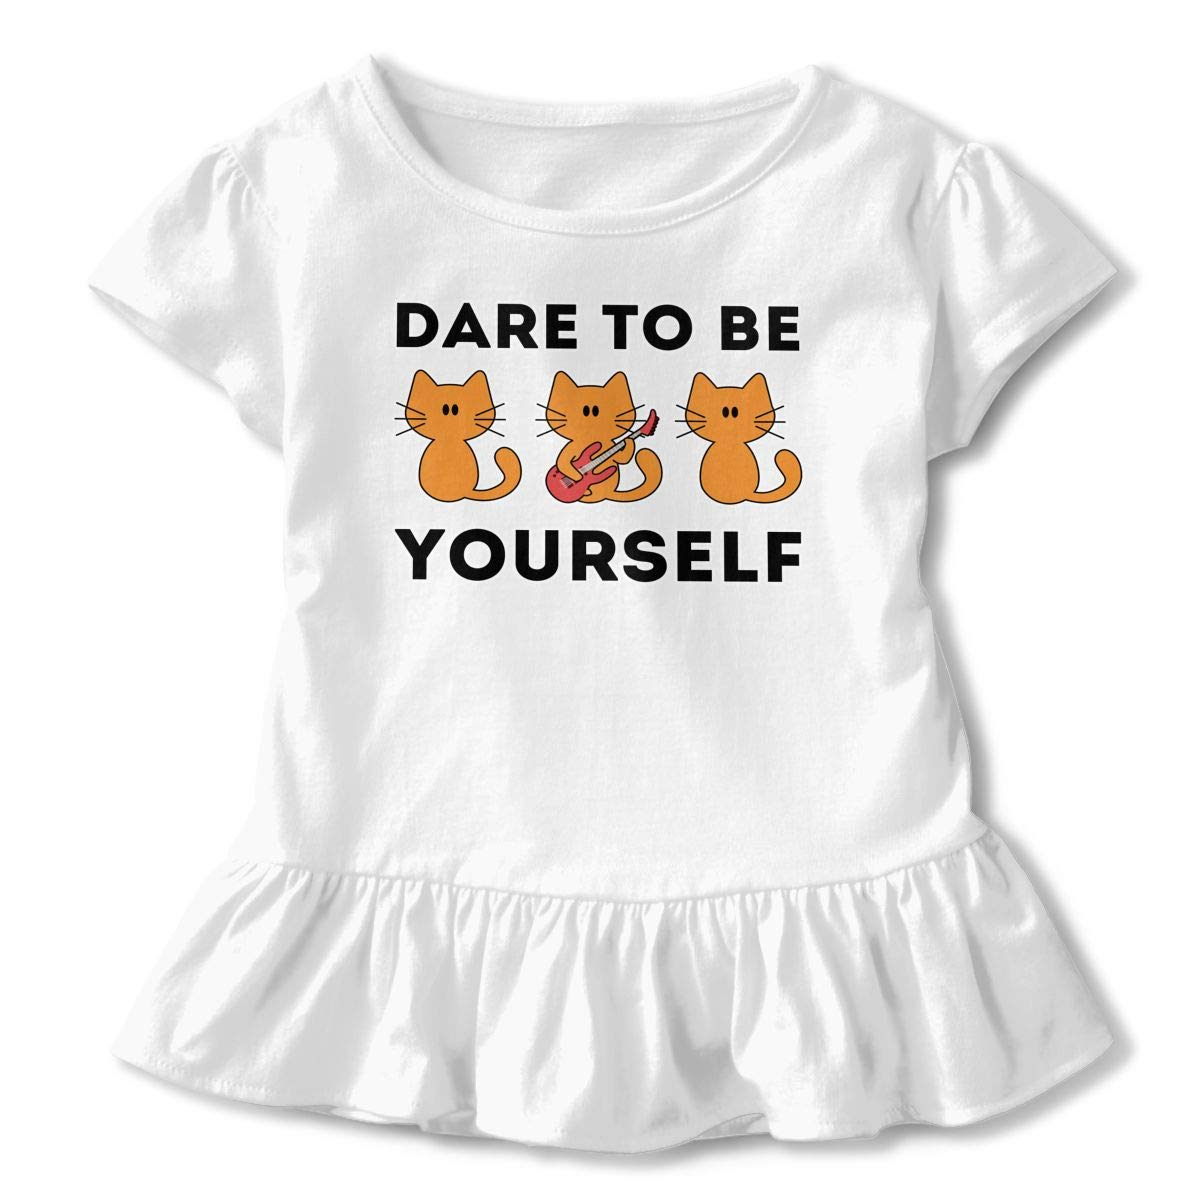 Dare to Be Yourself Toddler Baby Girls Cotton Ruffle Short Sleeve Top Comfortable T-Shirt 2-6T